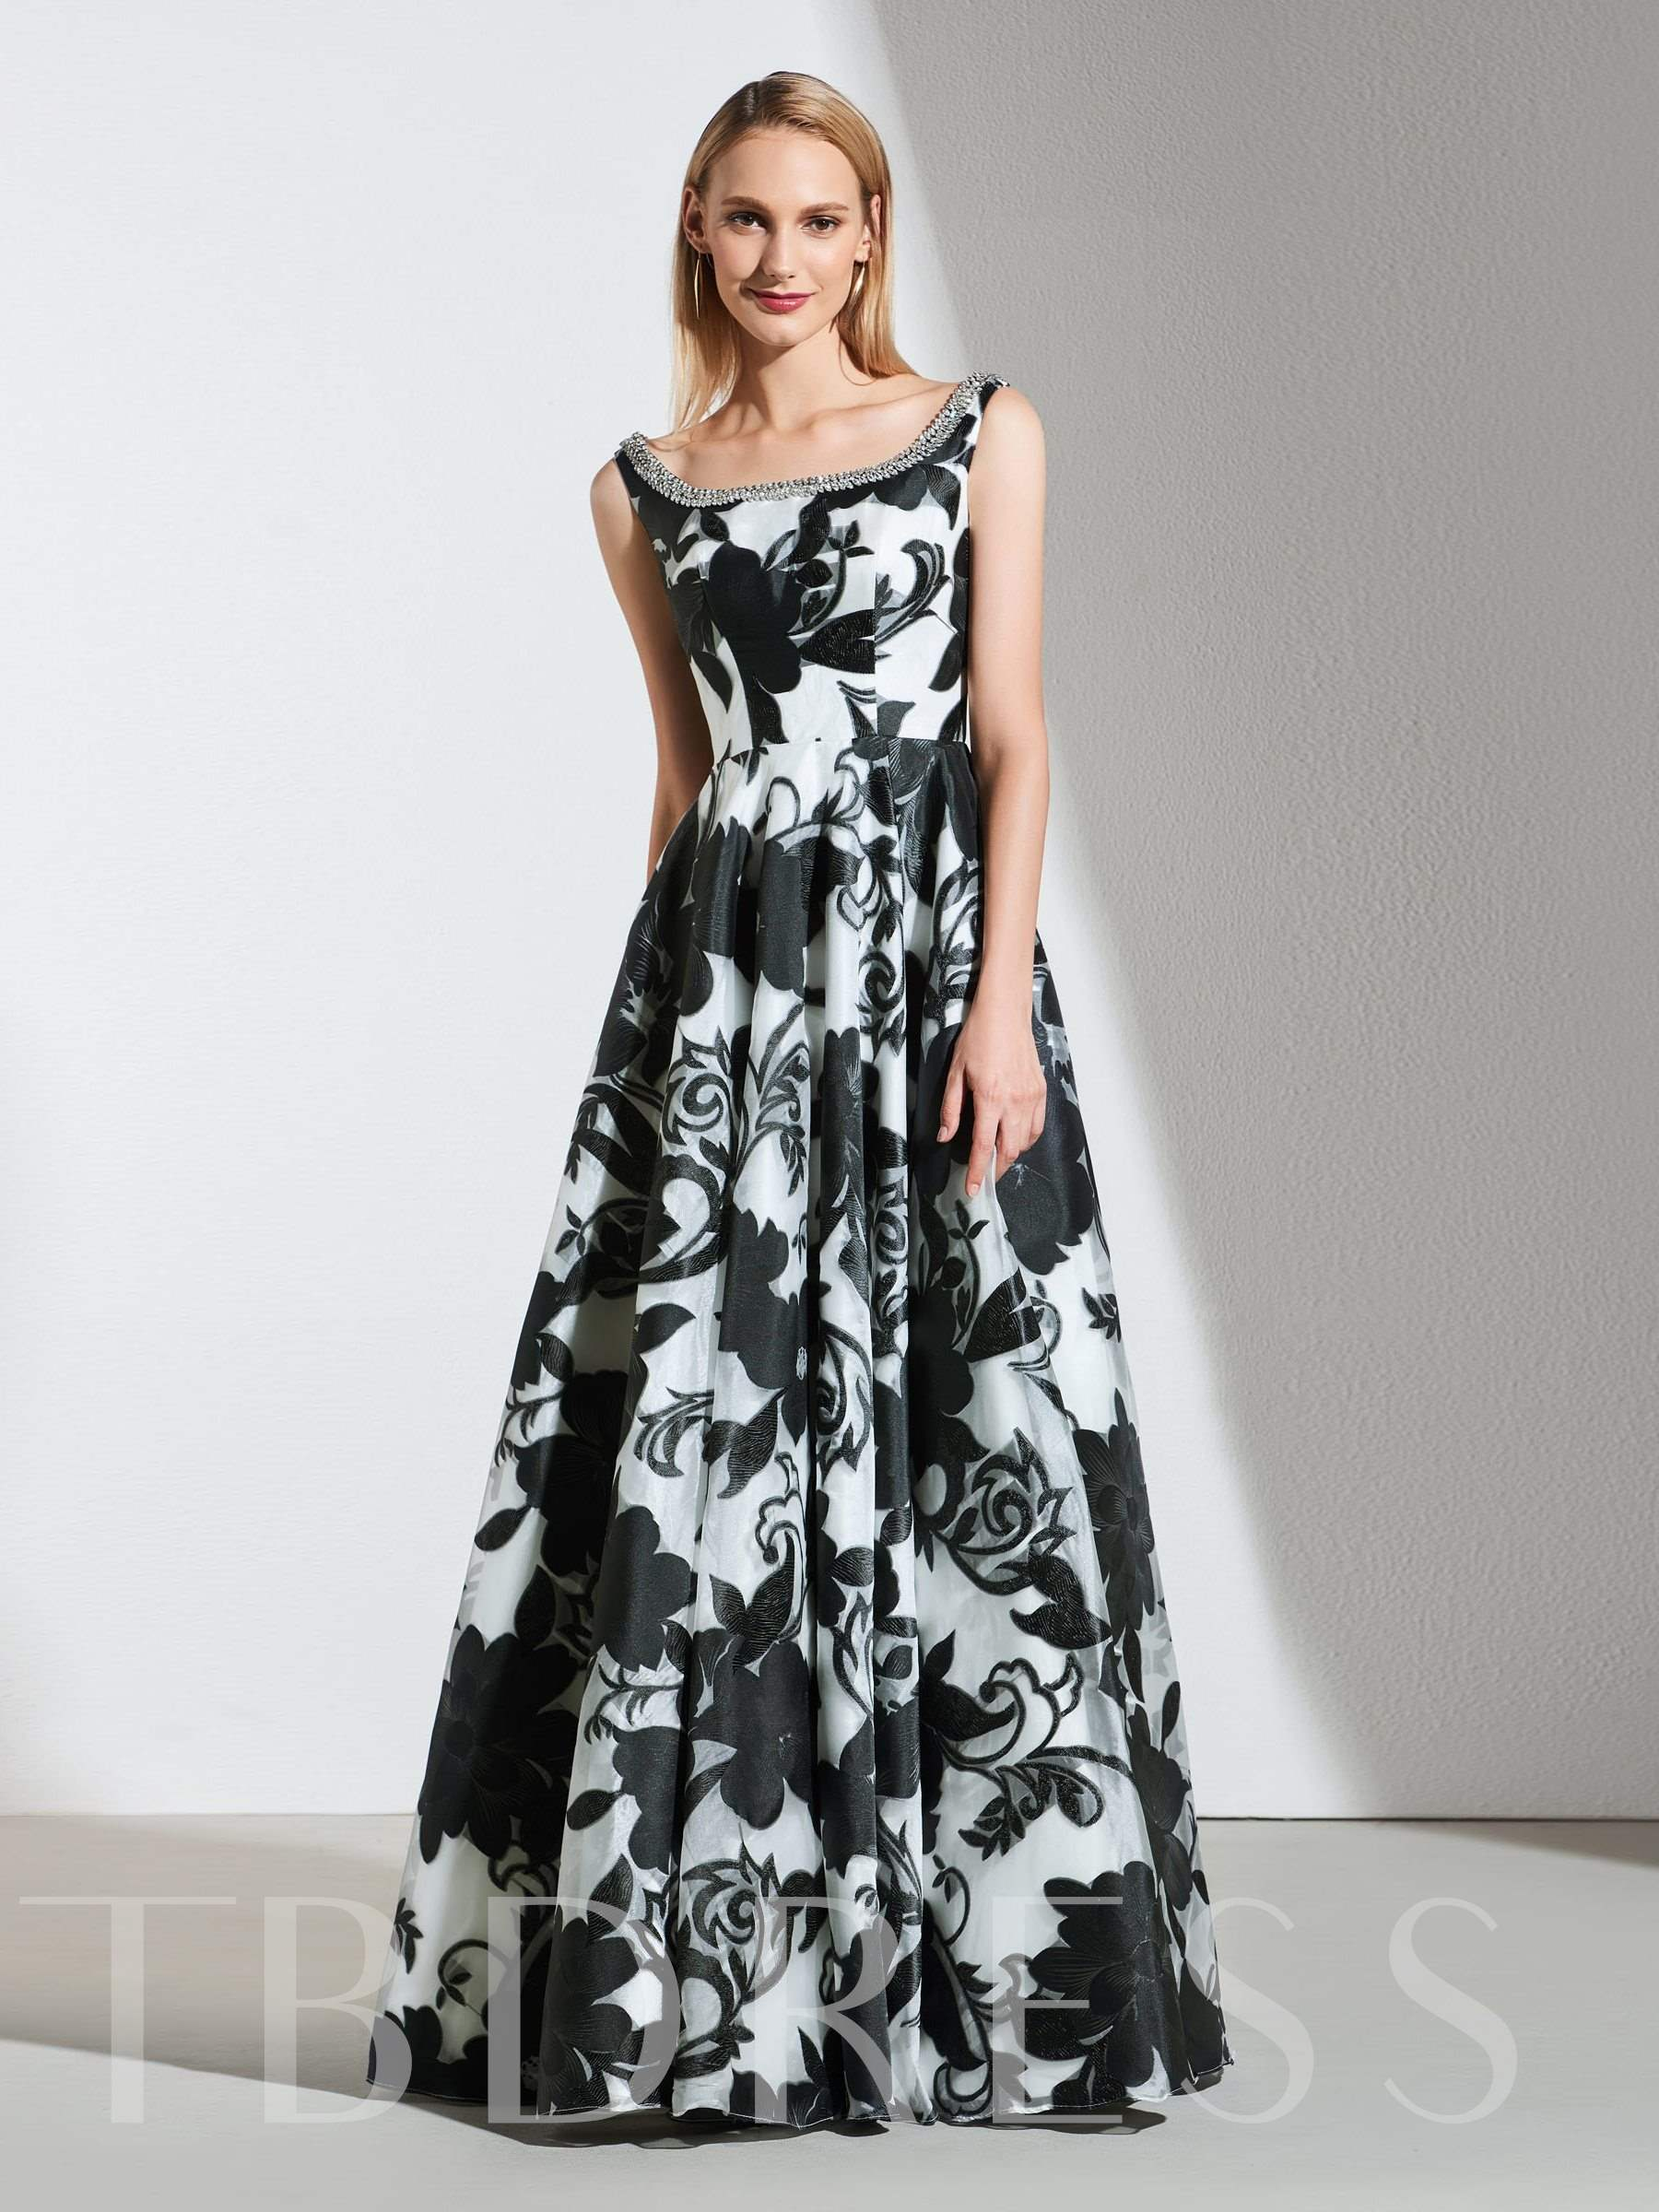 Buy A-Line Appliques Beading Flowers Printed Evening Dress, Spring,Summer,Fall,Winter, 13386432 for $188.99 in TBDress store